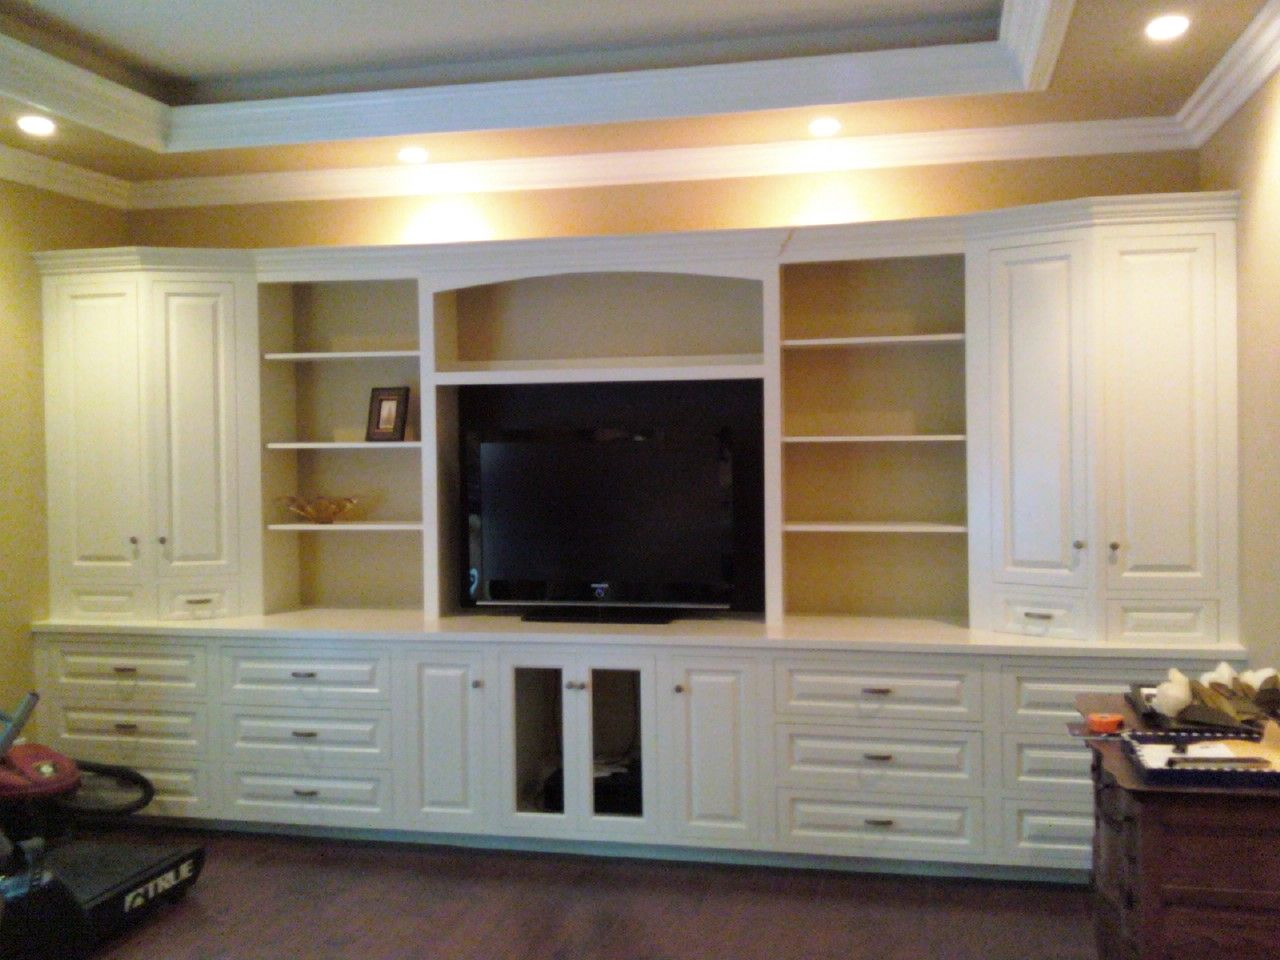 Built In Shelving Built In Wall Units Bedroom Wall Units Wall